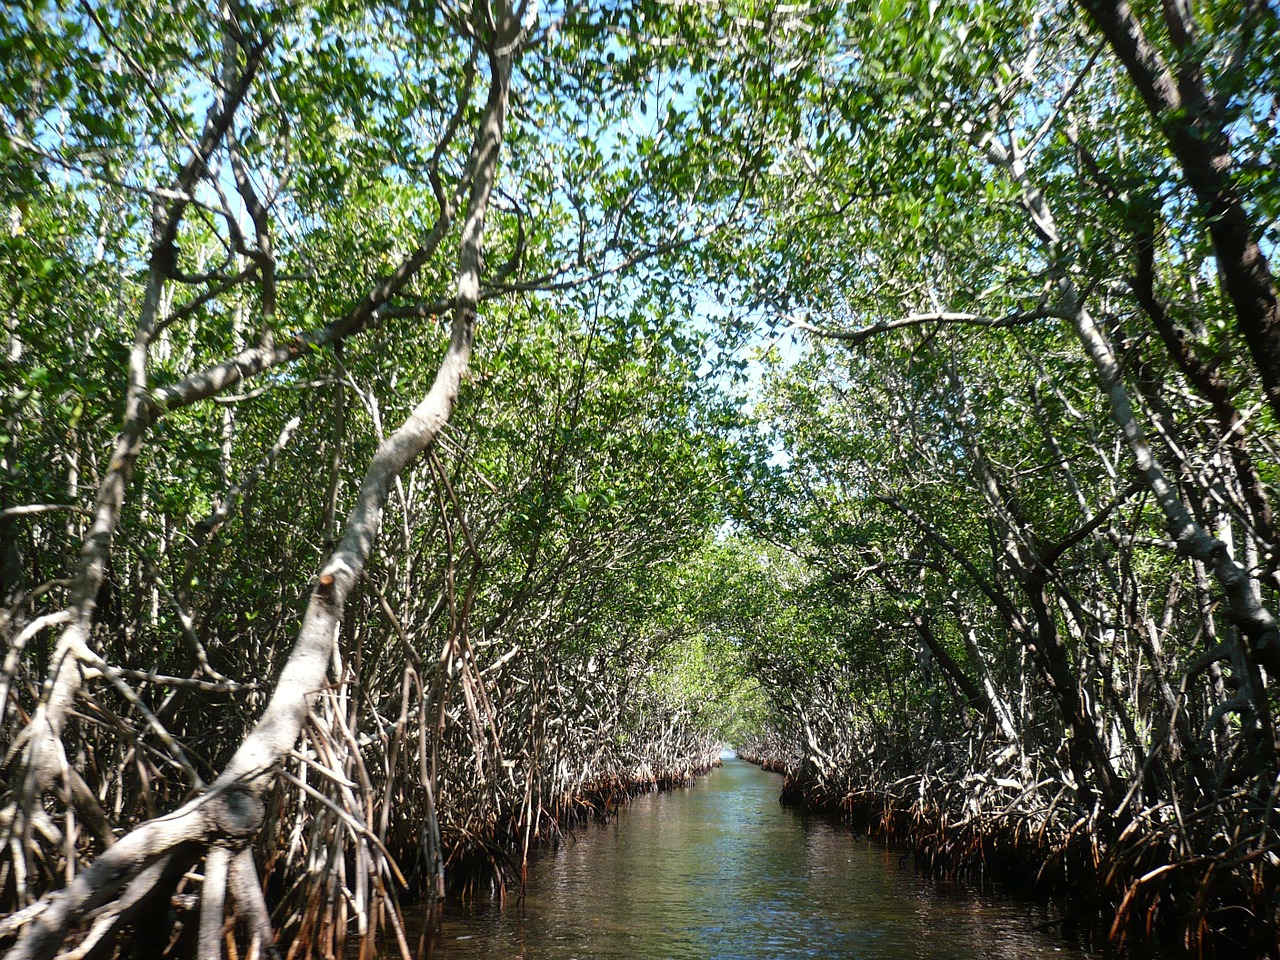 Mangroves at the Everglades Nation Park